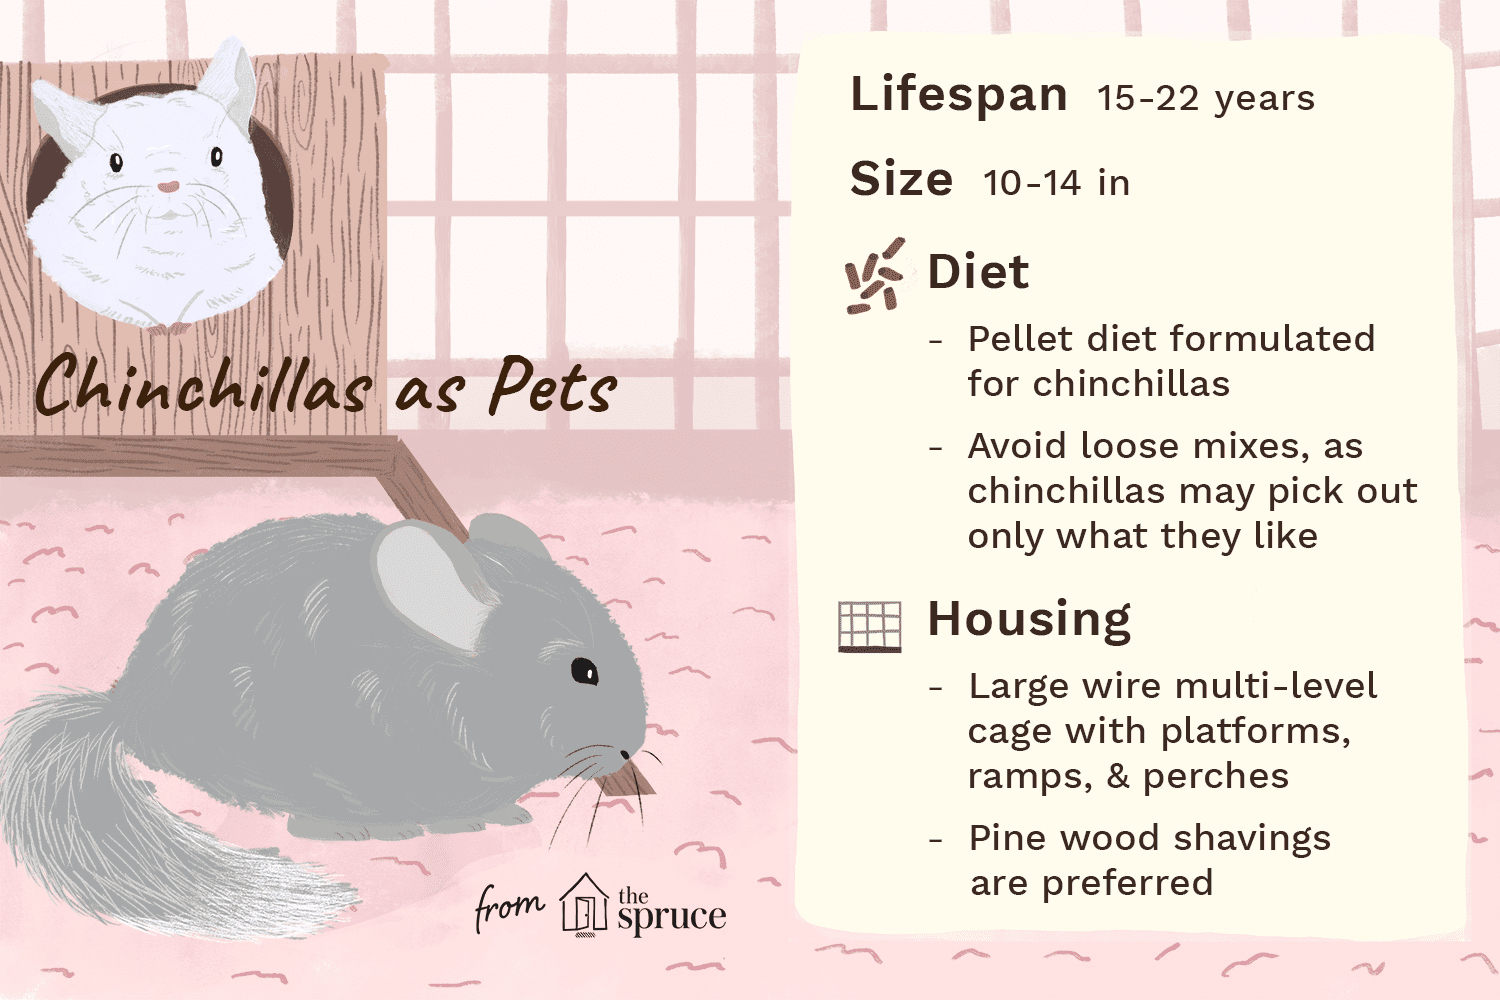 illustration of chinchillas as pets—care sheet